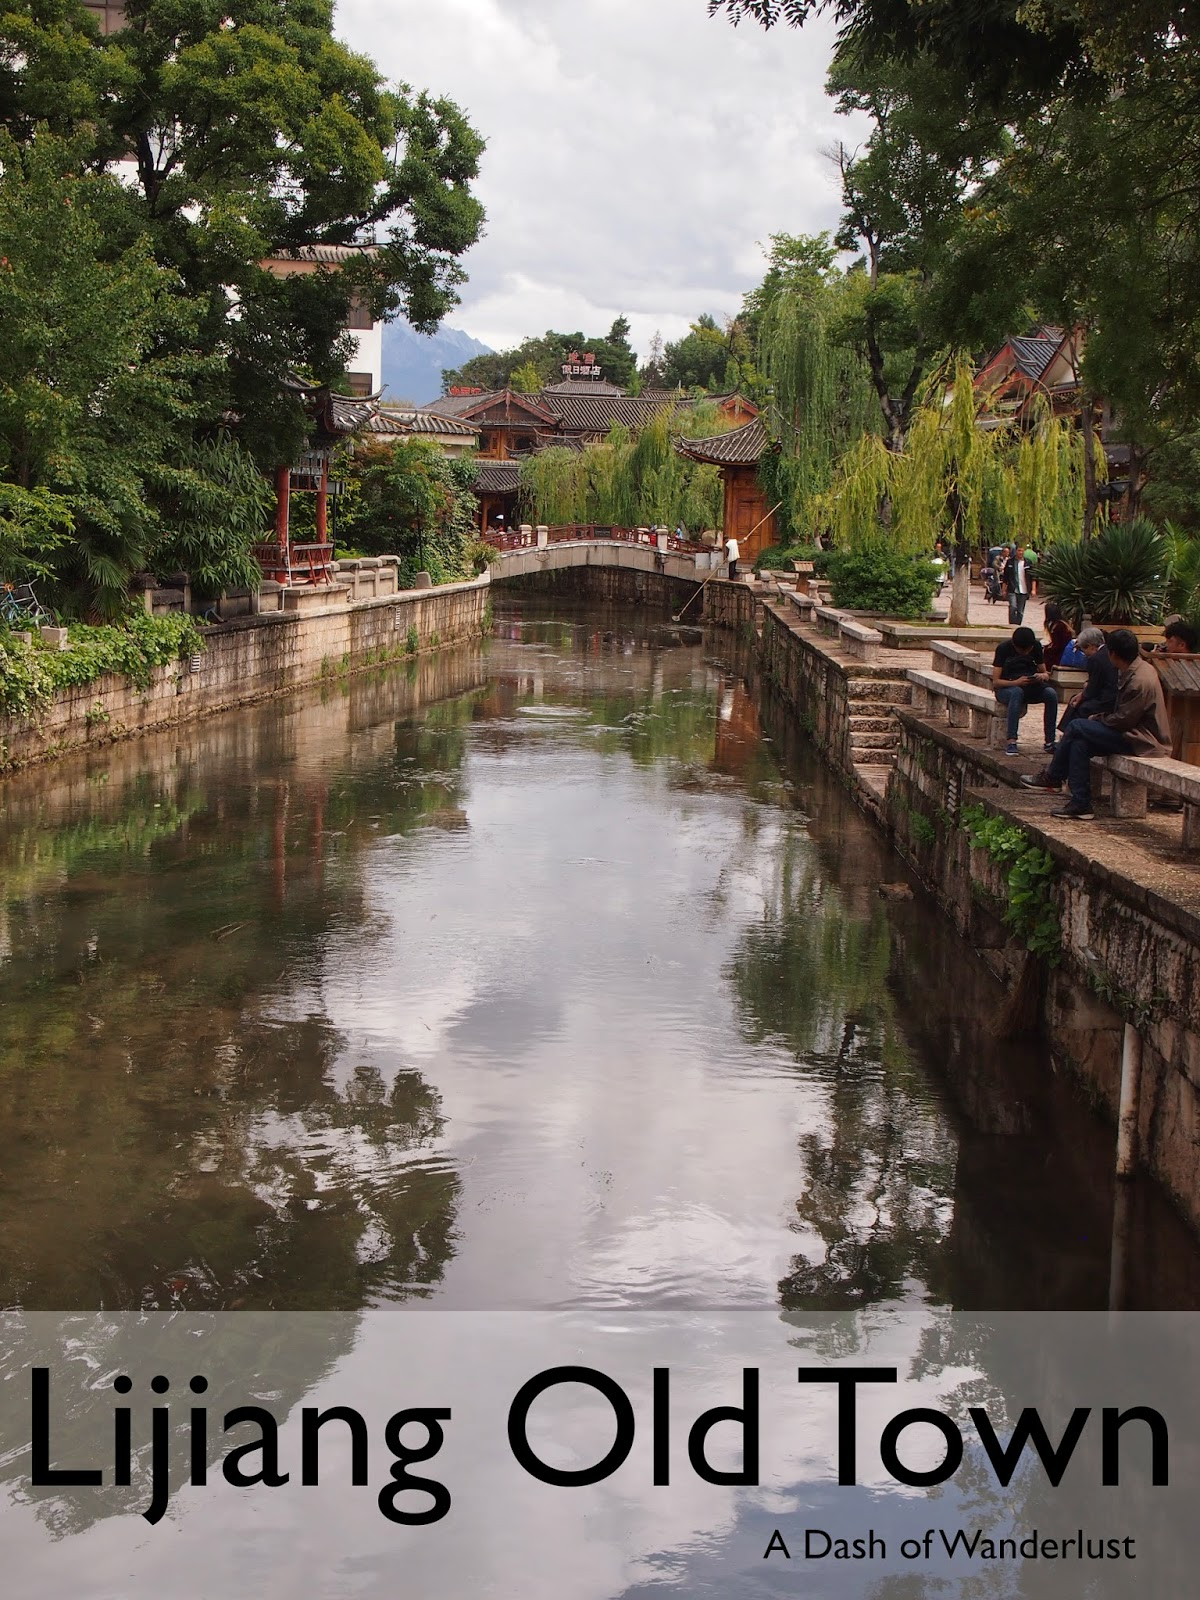 an image of the canals in lijiang old town